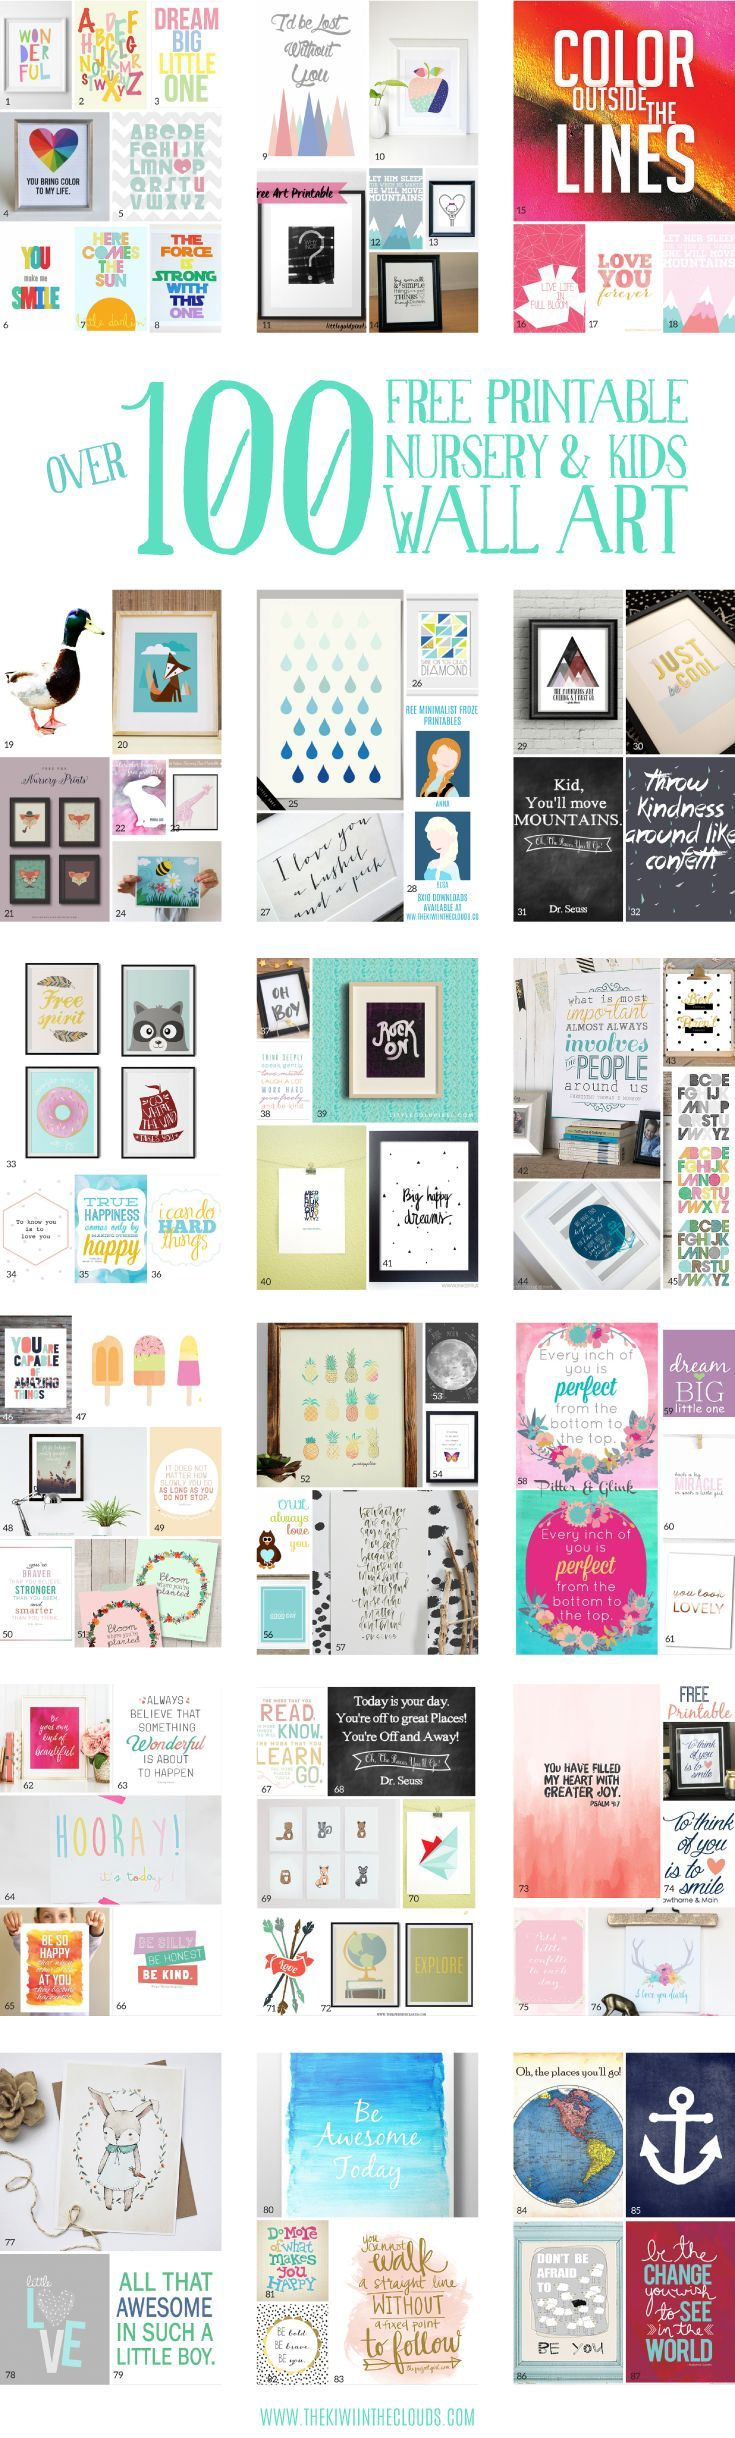 Ideas and inspiration for kids decorating with stuva petit amp small - A Gigantic Guide To The Best Nursery And Kids Wall Art Printables Pin For Later